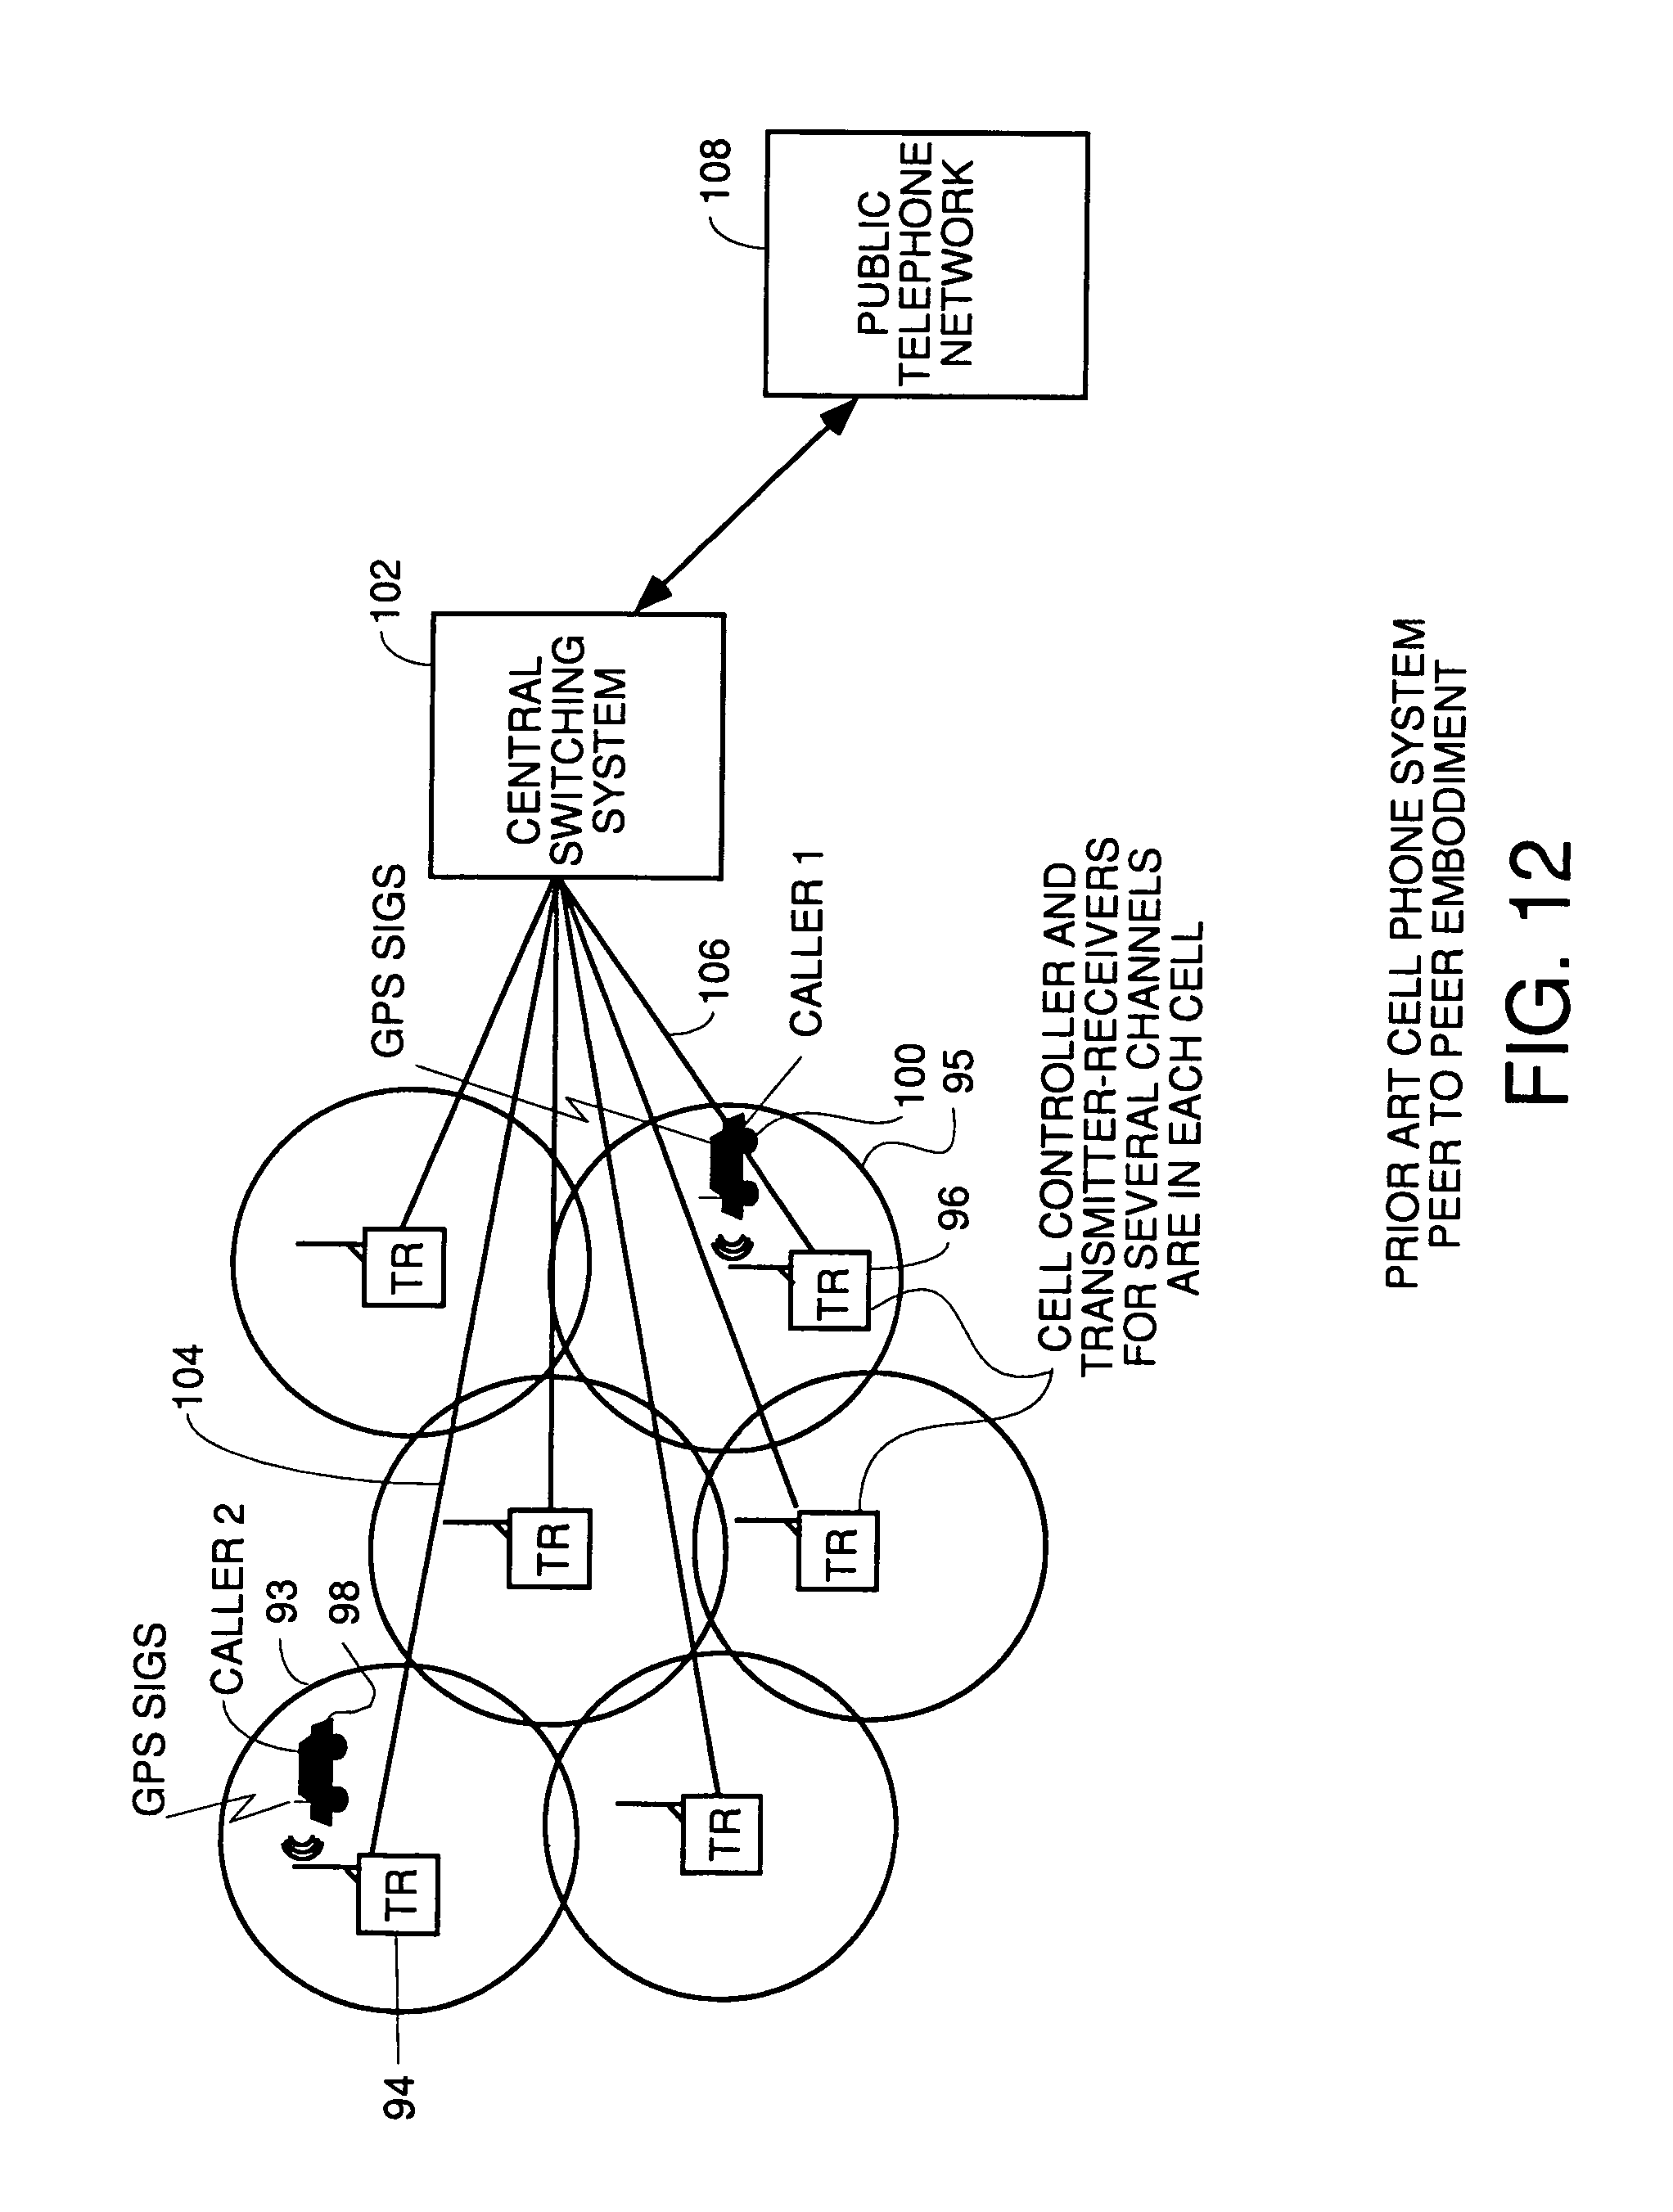 us7353034b2 location sharing and tracking using mobile phones or  us7353034b2 location sharing and tracking using mobile phones or other wireless devices patents